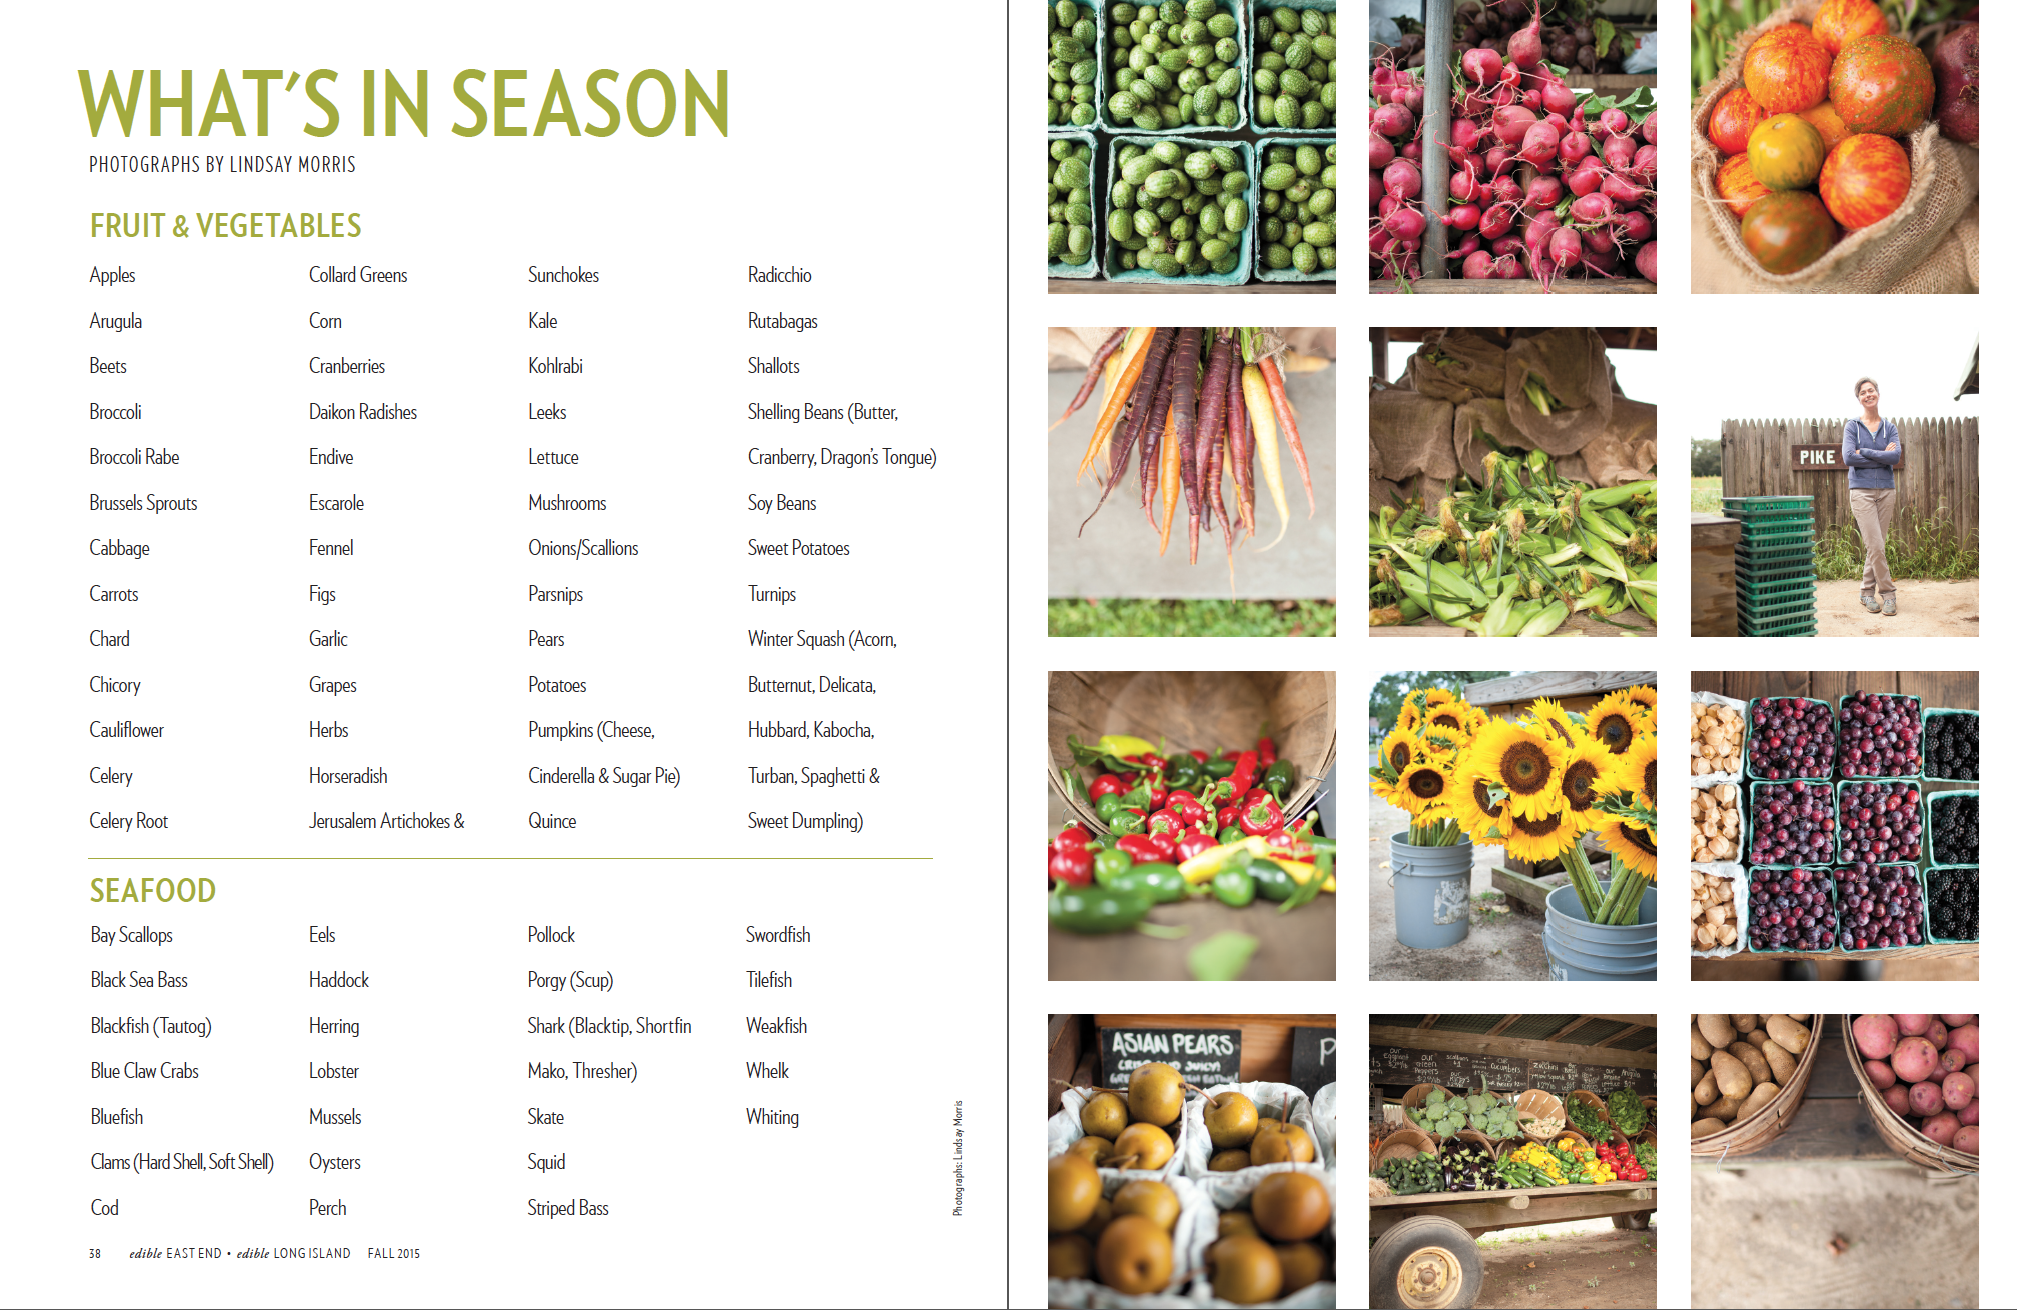 What's In Season List